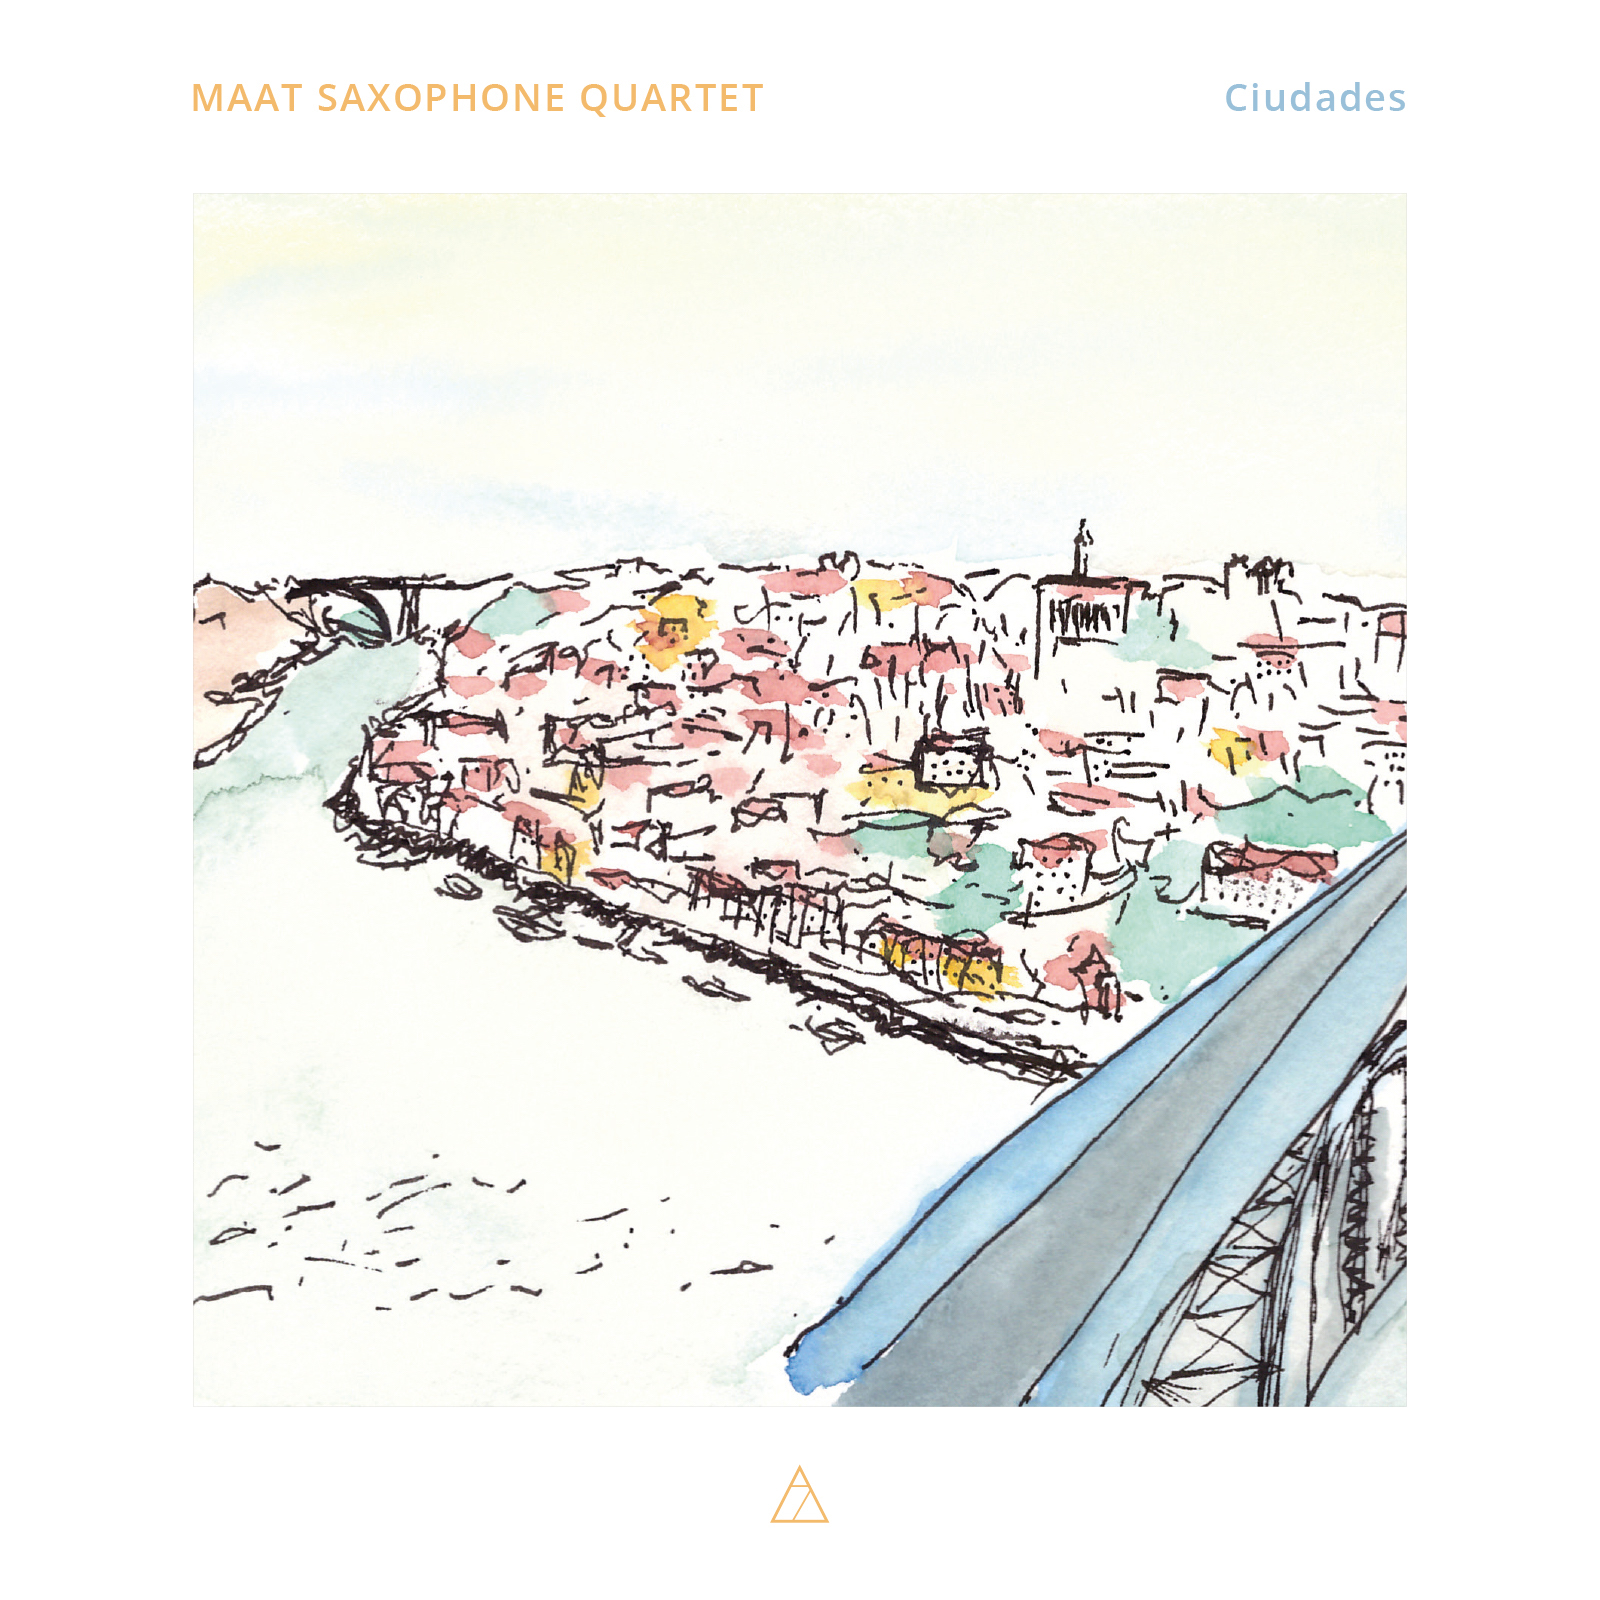 Maat-Sax-Quartet-Ciudades-_-cover-highre